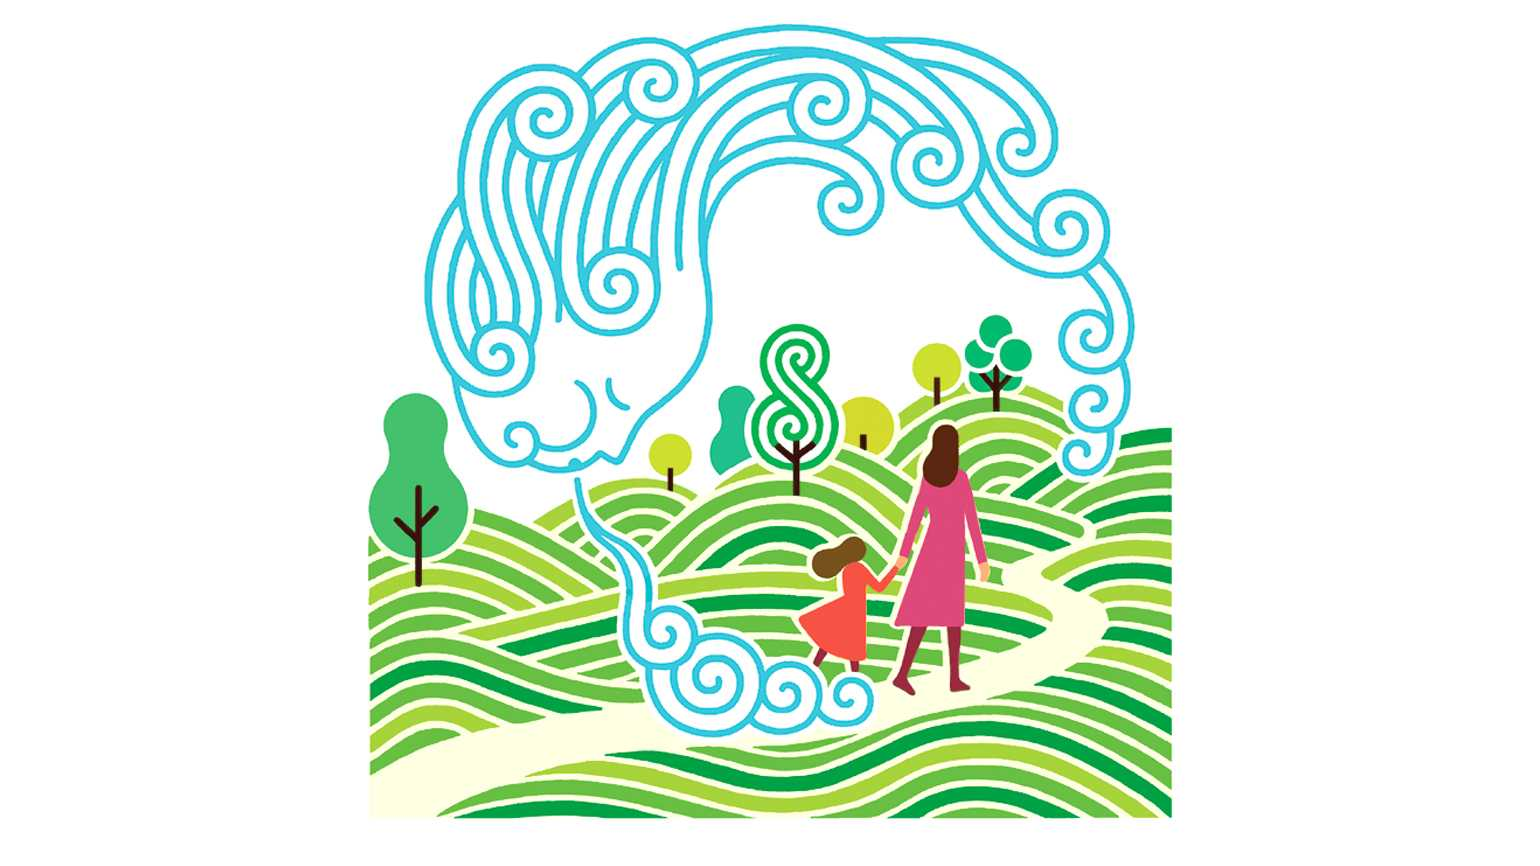 An illustration of a mother and daughter walking through a park with a personified head of the wind blowing.